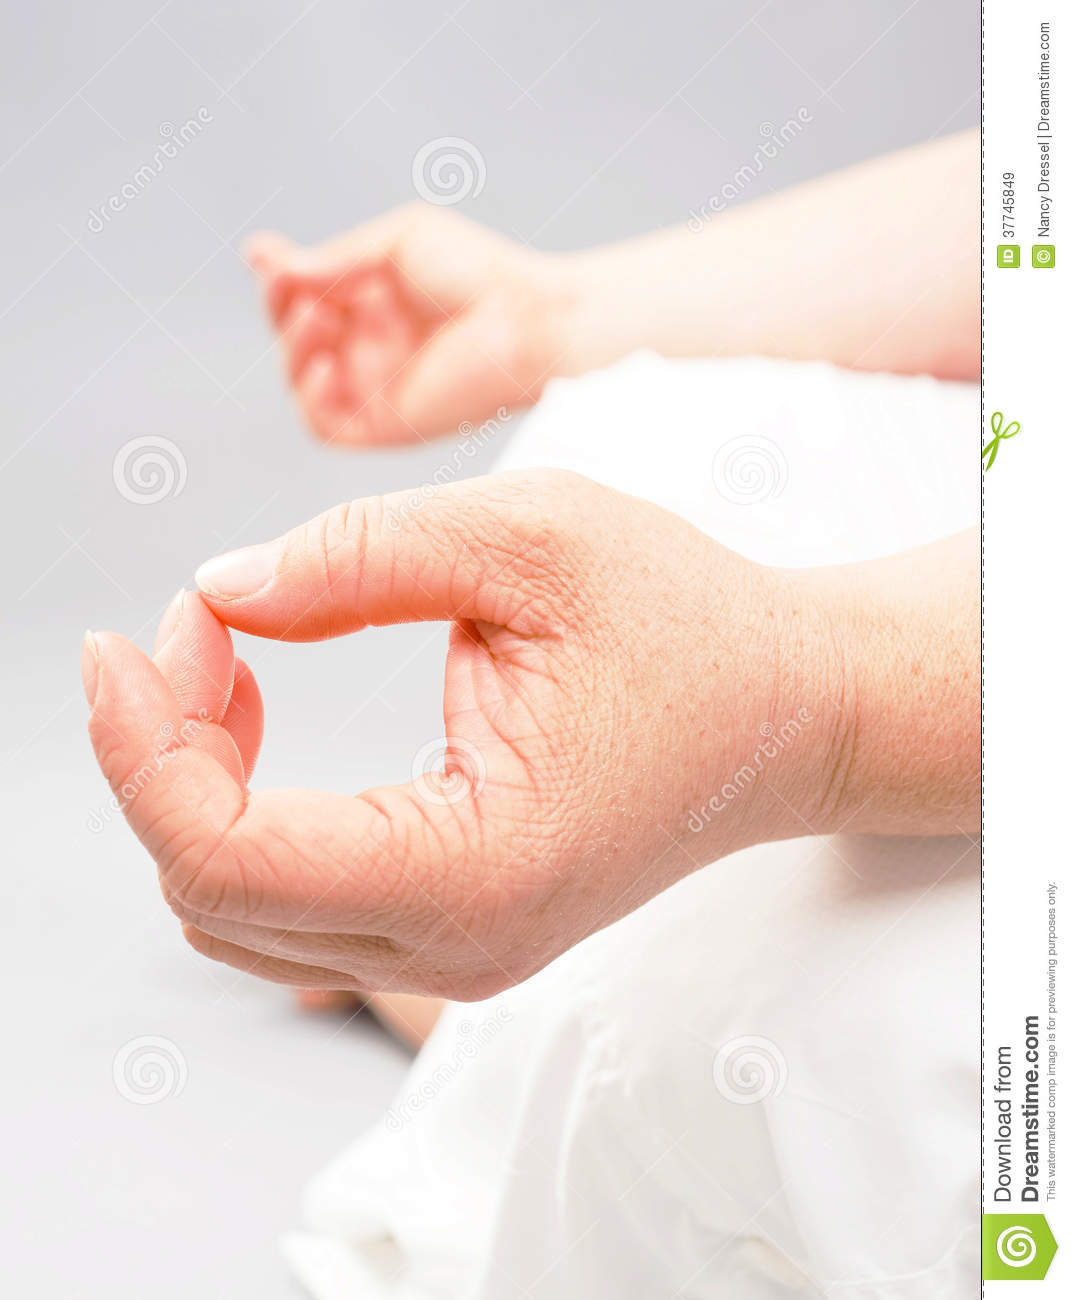 Woman sitting in yoga pose during meditation  Closeup body part of her    Yoga Meditation Pose